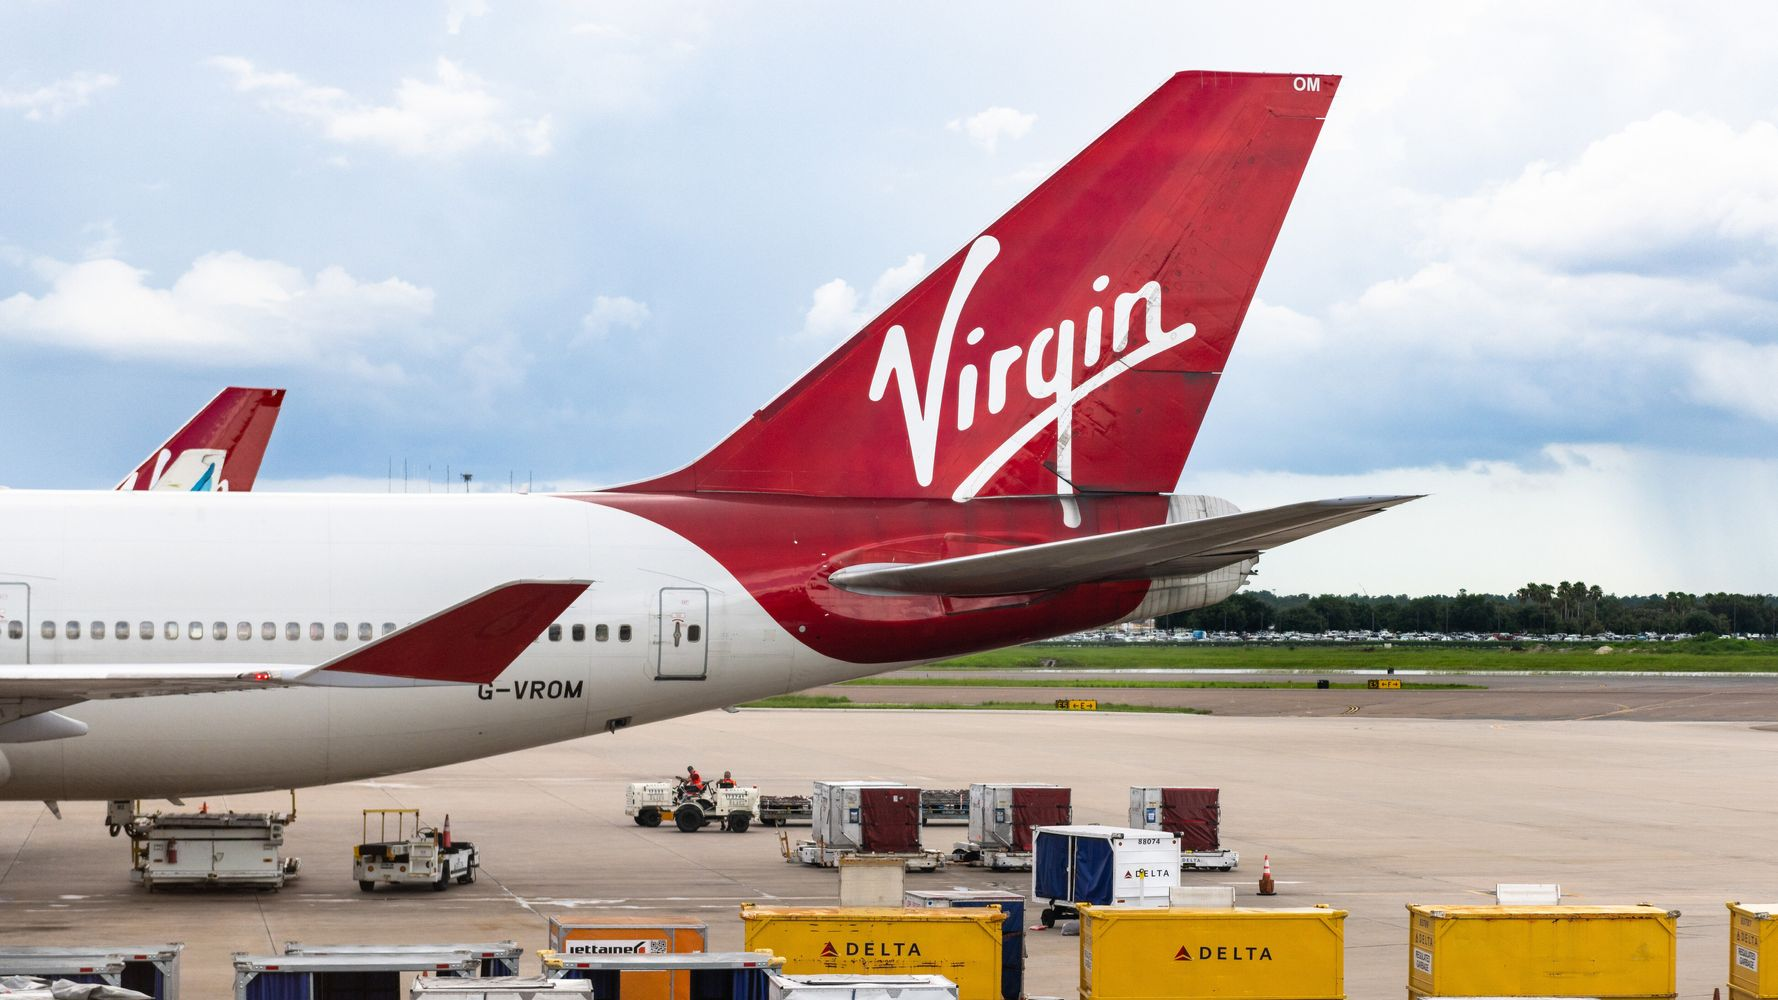 'I Felt Violated' Says Woman Sent Sexual Messages On Virgin's In-Flight Entertainment